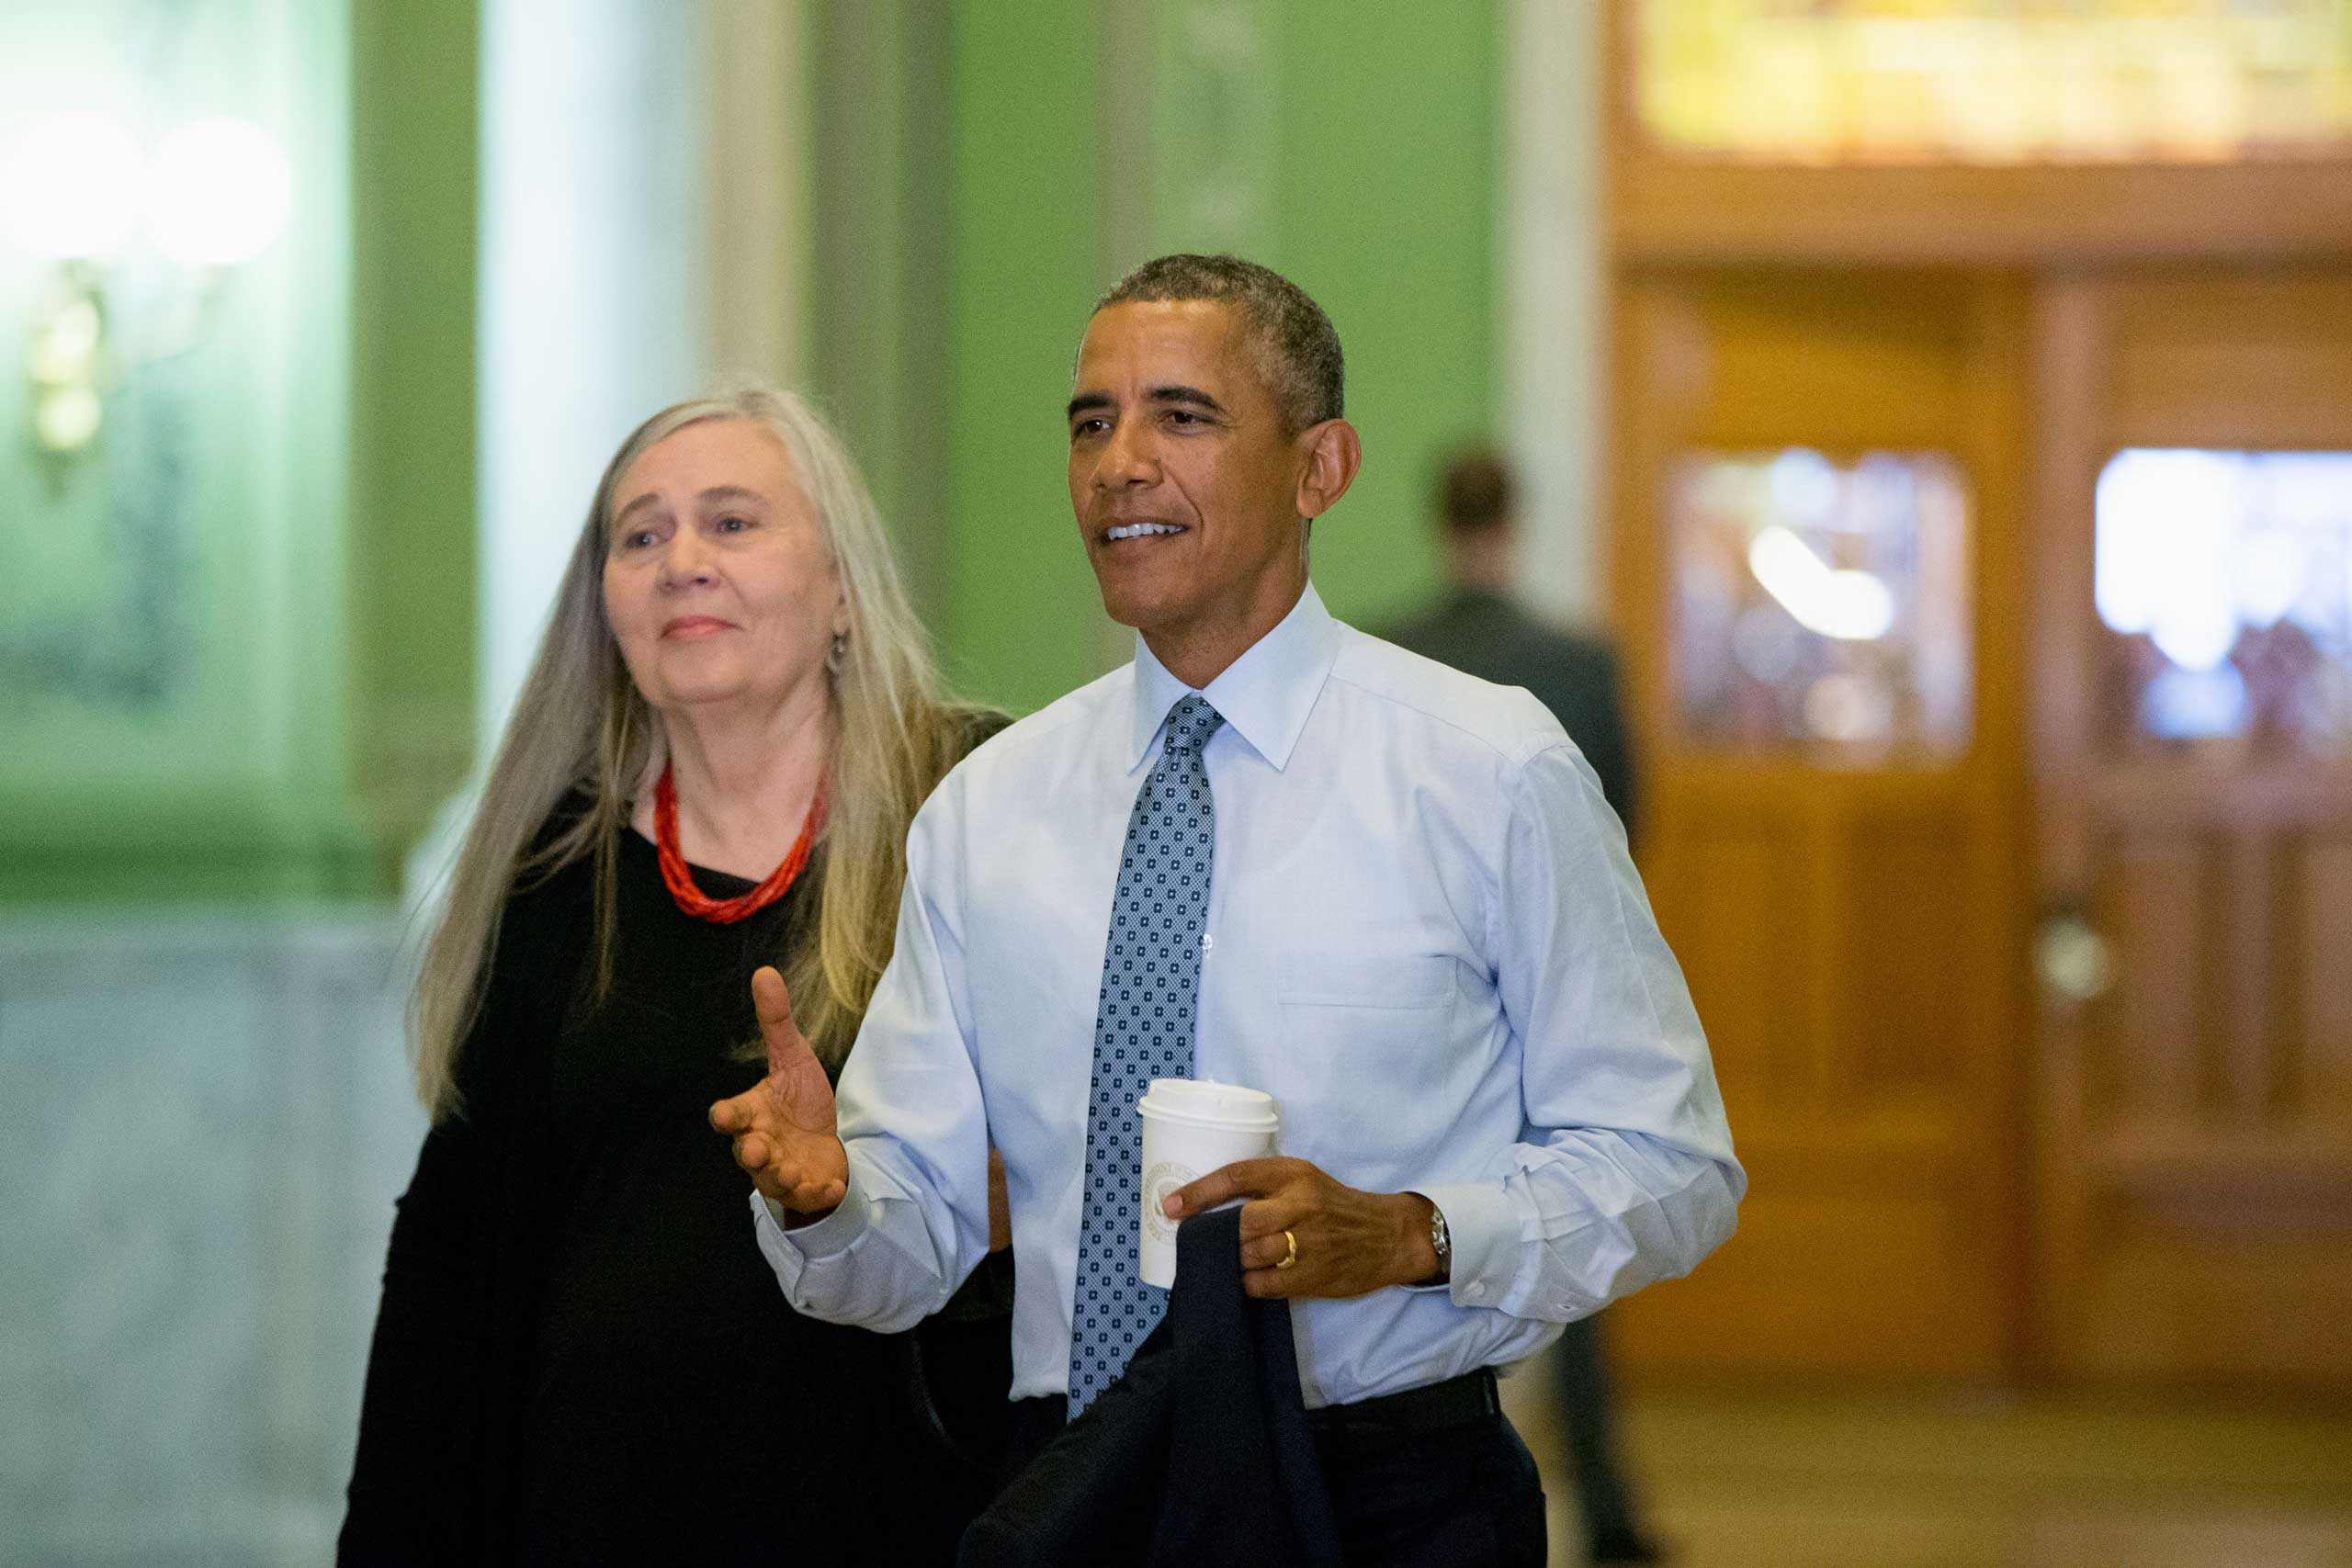 President Barack Obama, accompanied by Pulitzer Prize winning Iowa writer Marilynne Robinson, arrives to the State Library of Iowa in the Ola Babcock Miller Building in Des Moines, Sept. 14, 2015.